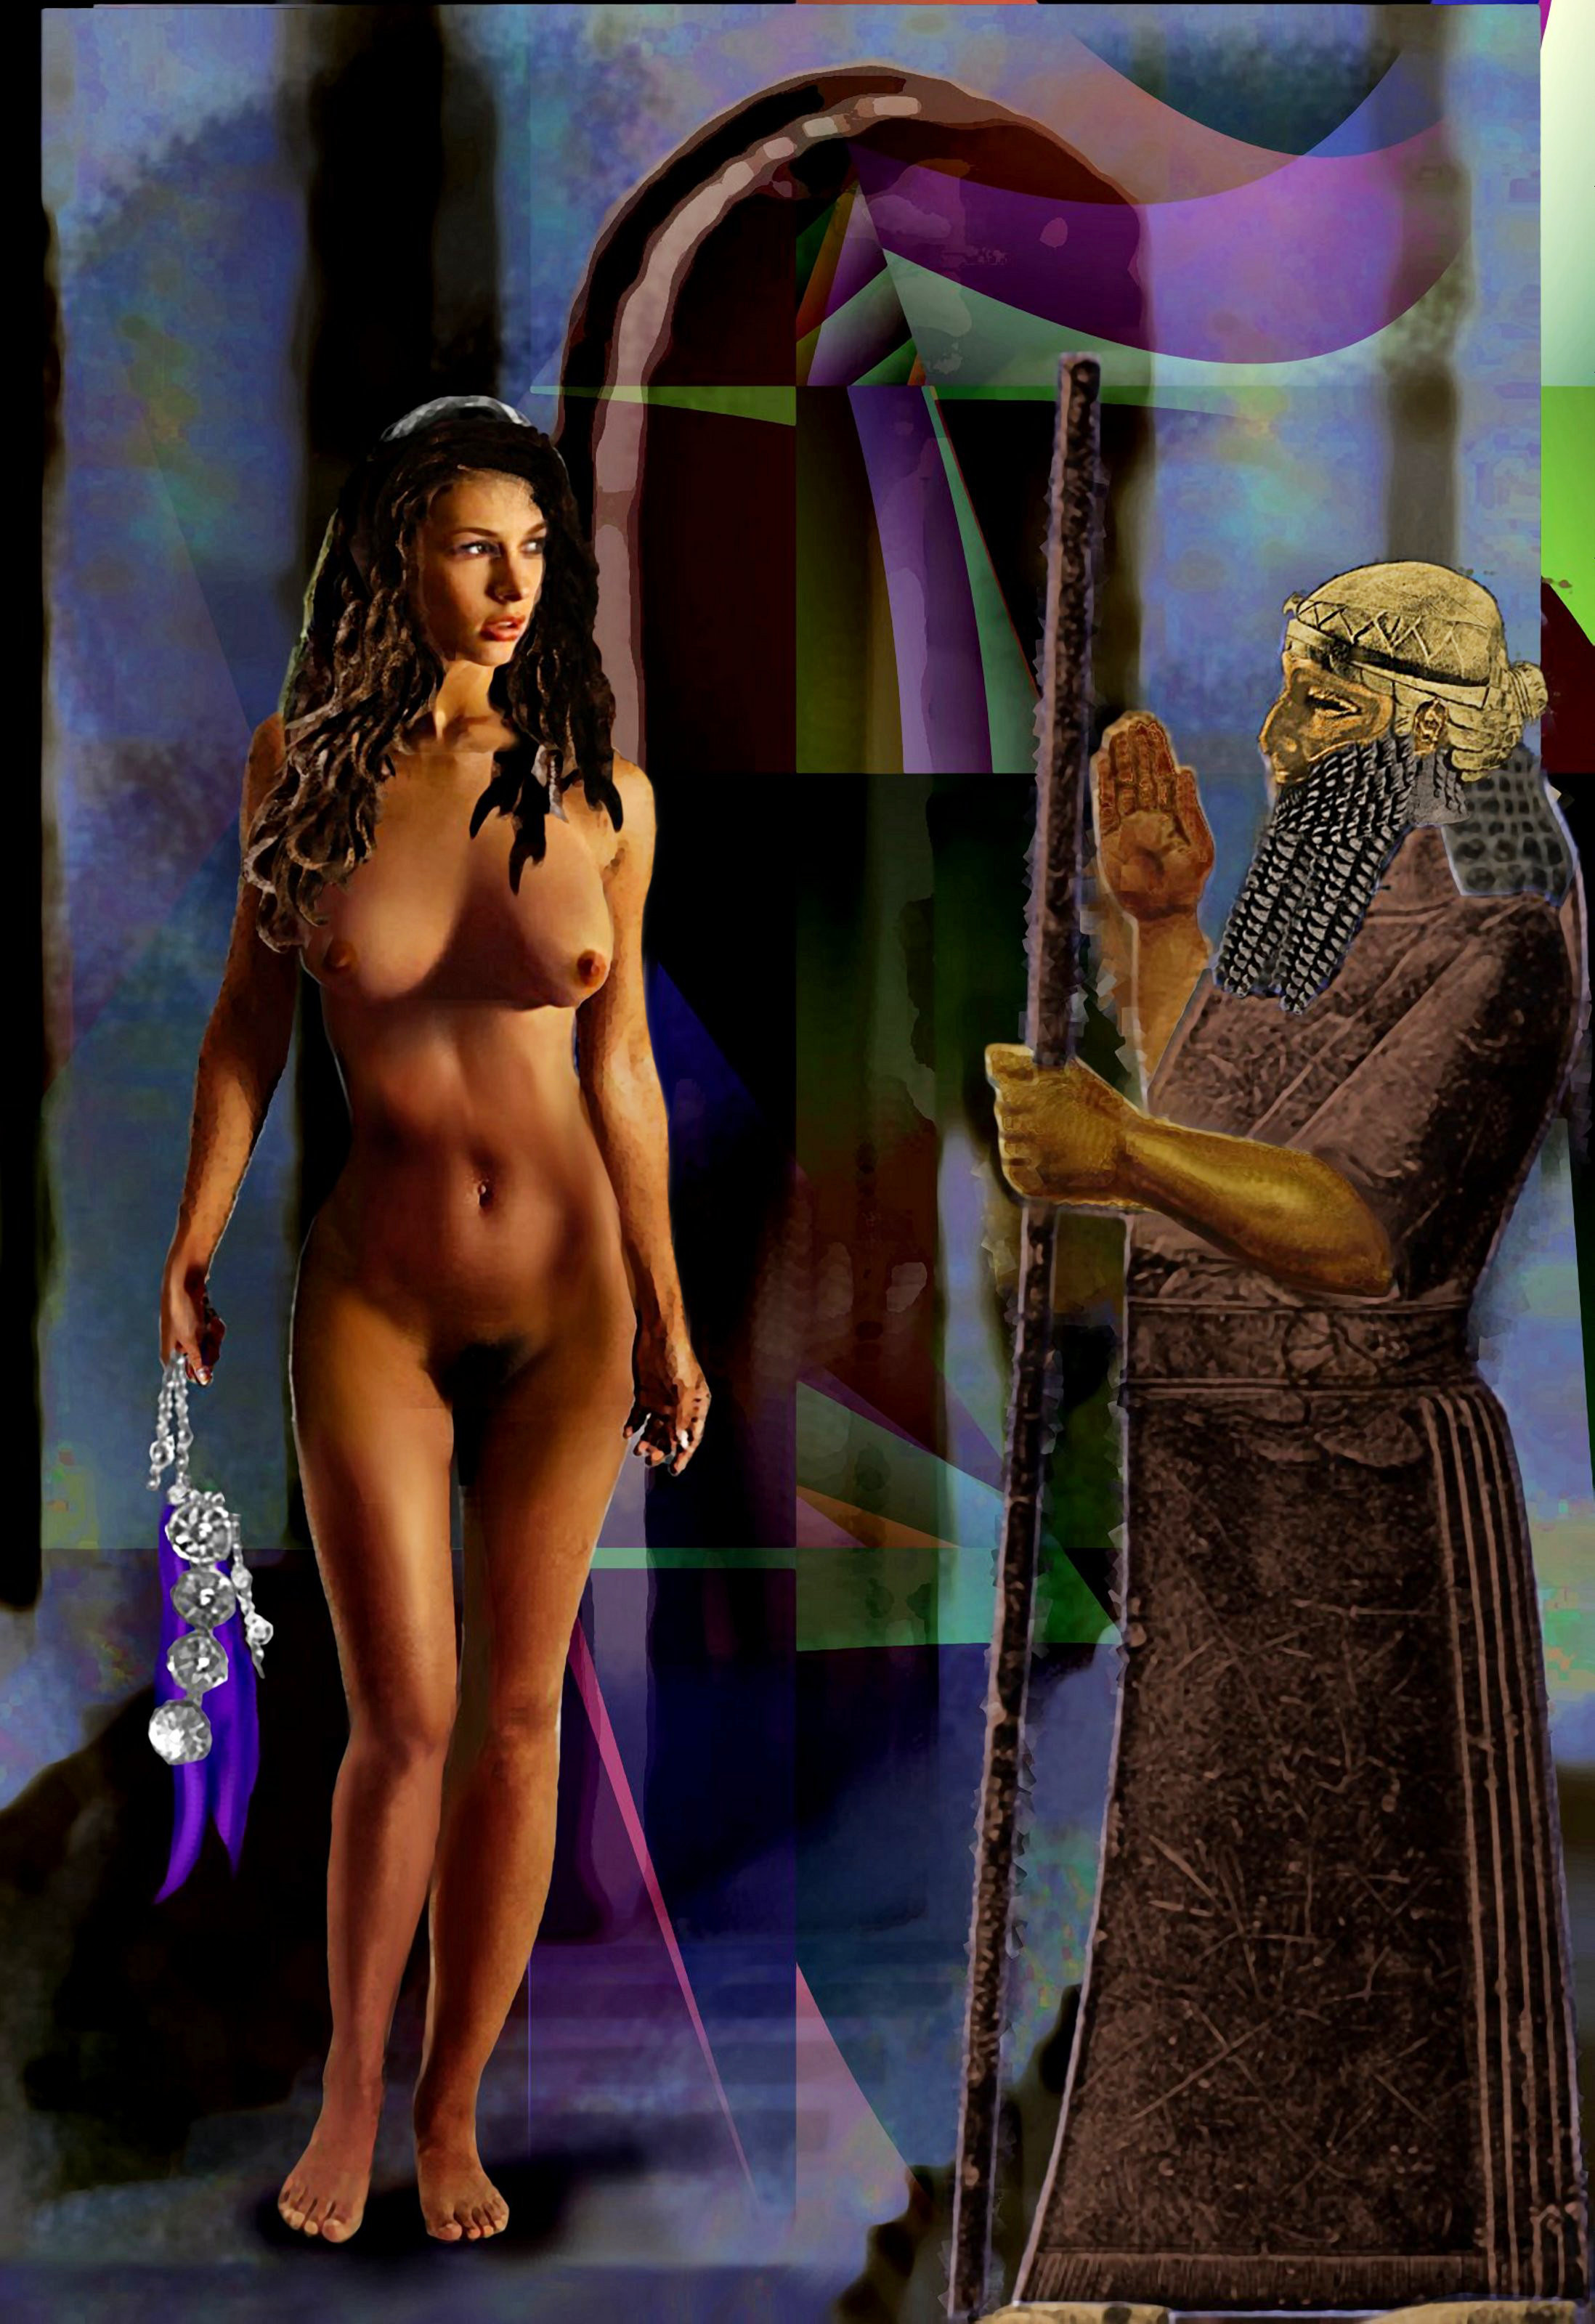 FEMALE NUDE JEAN AS                                 GODDESS IANNA 7th GATE - ORIGINAL                                 DIGITAL FINE ART WORK - original fine                                 art work by G. Linsenmayer